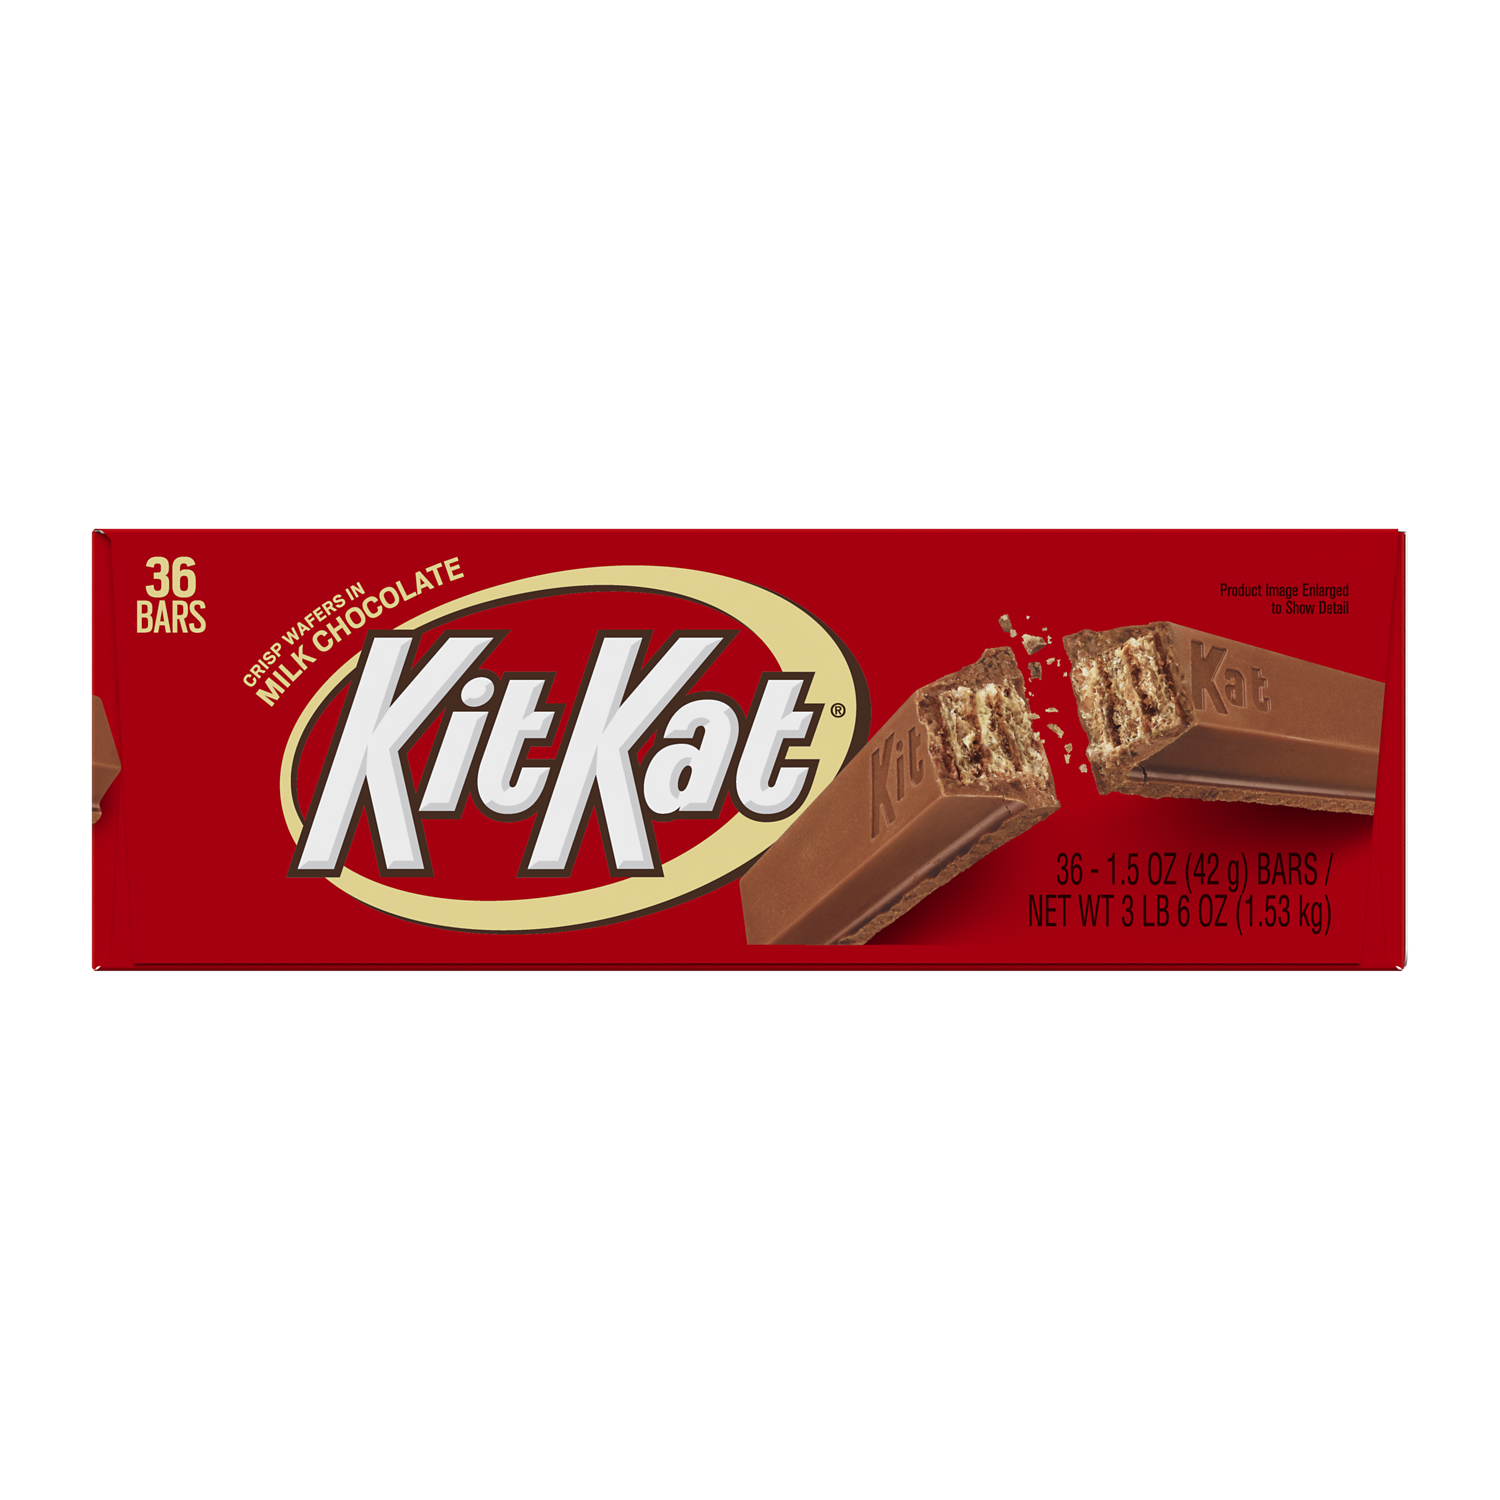 KIT KAT® Milk Chocolate Candy Bars, 1.5 oz box, 36 pack - Front of Package